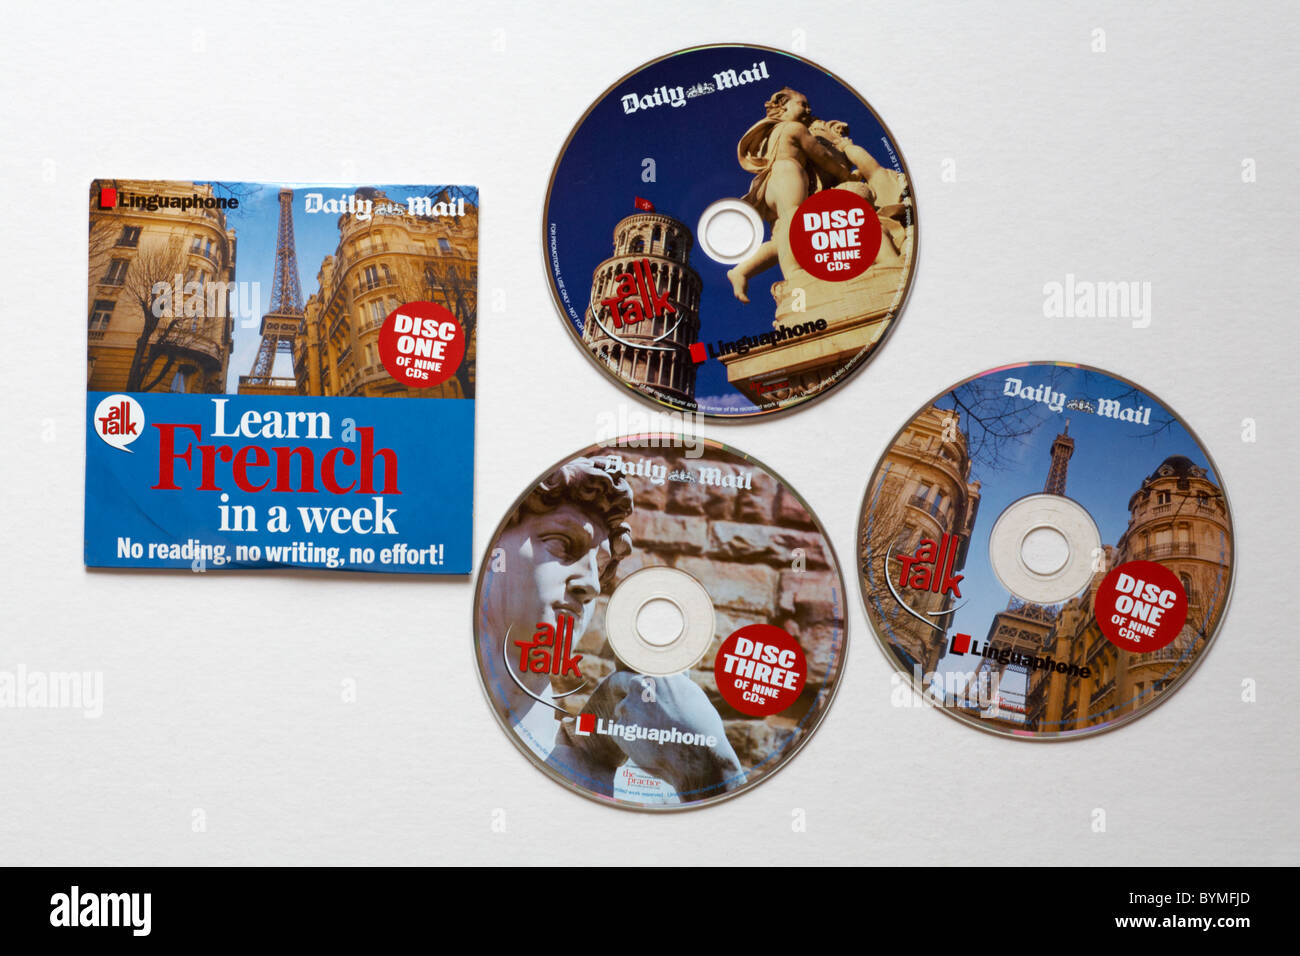 Free language CDs given away with the Daily Mail - Stock Image